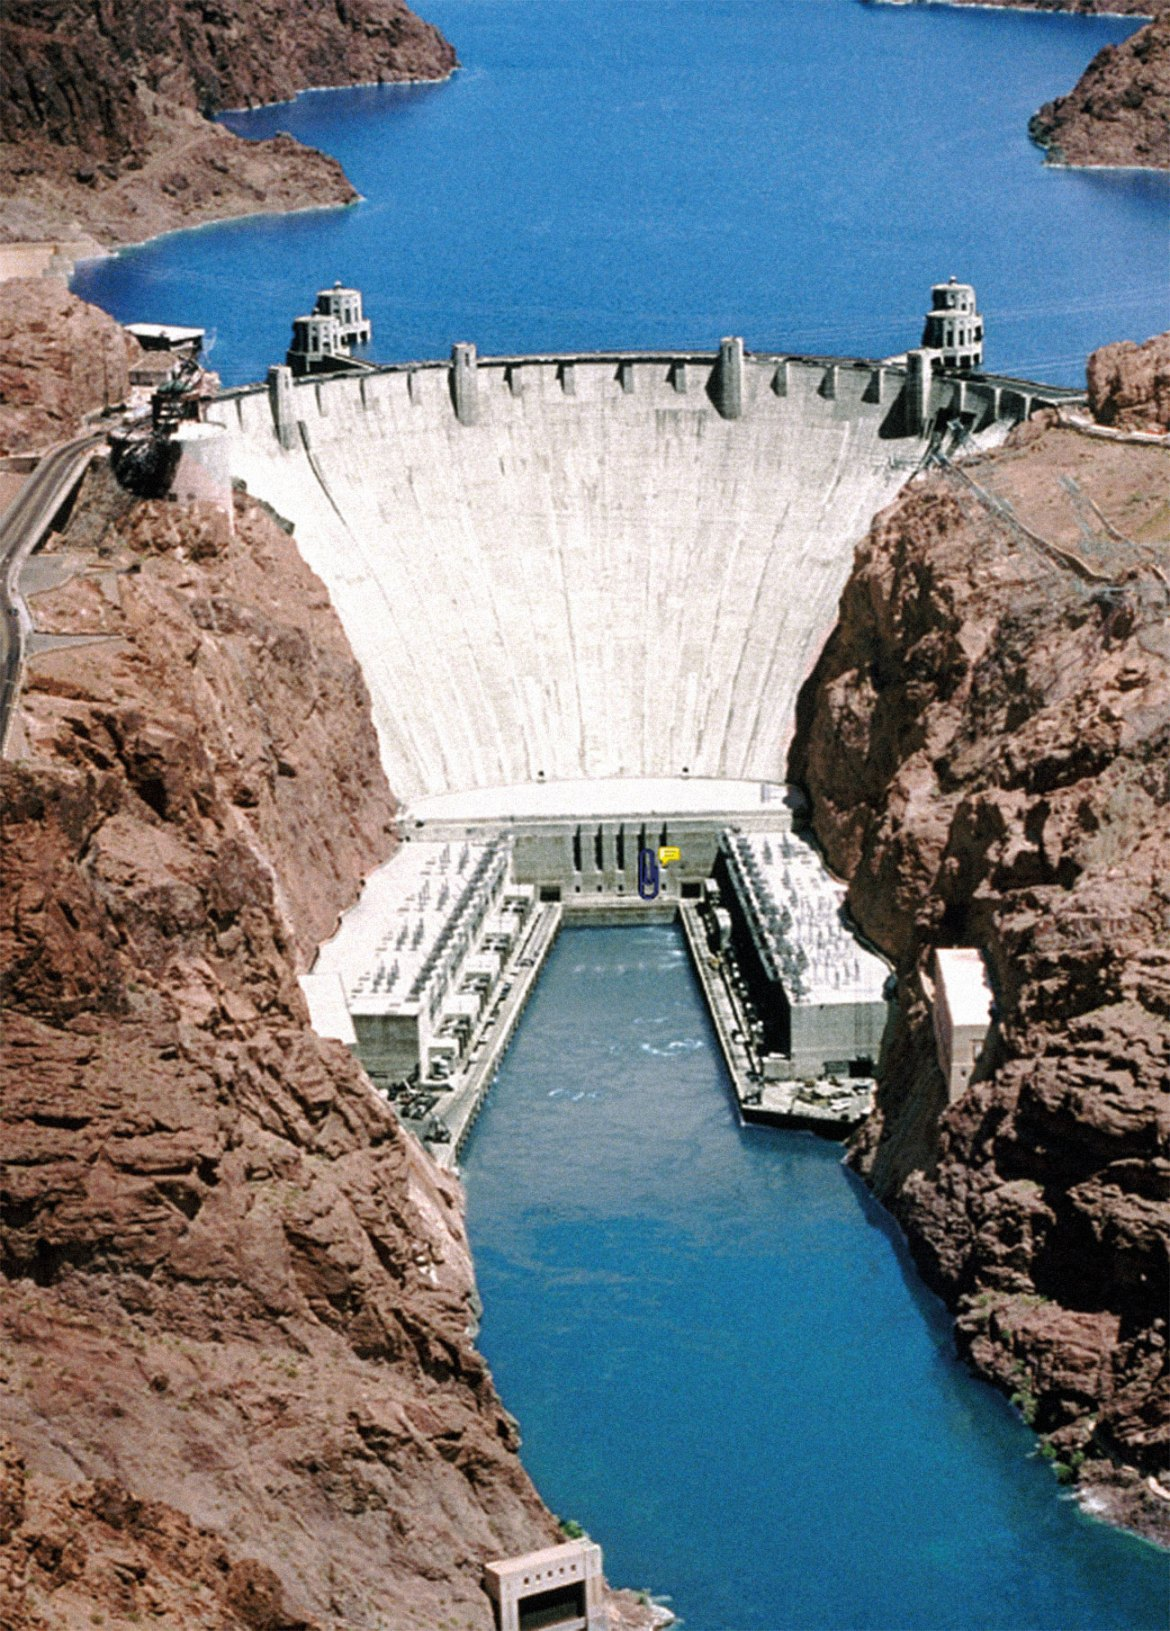 View from above the Hoover Dam on the Colorado River in Boulder City, Nevada. The Victaulic Stainless Steel grooved system provided ease and speed of installation allowing the project to be completed on time.